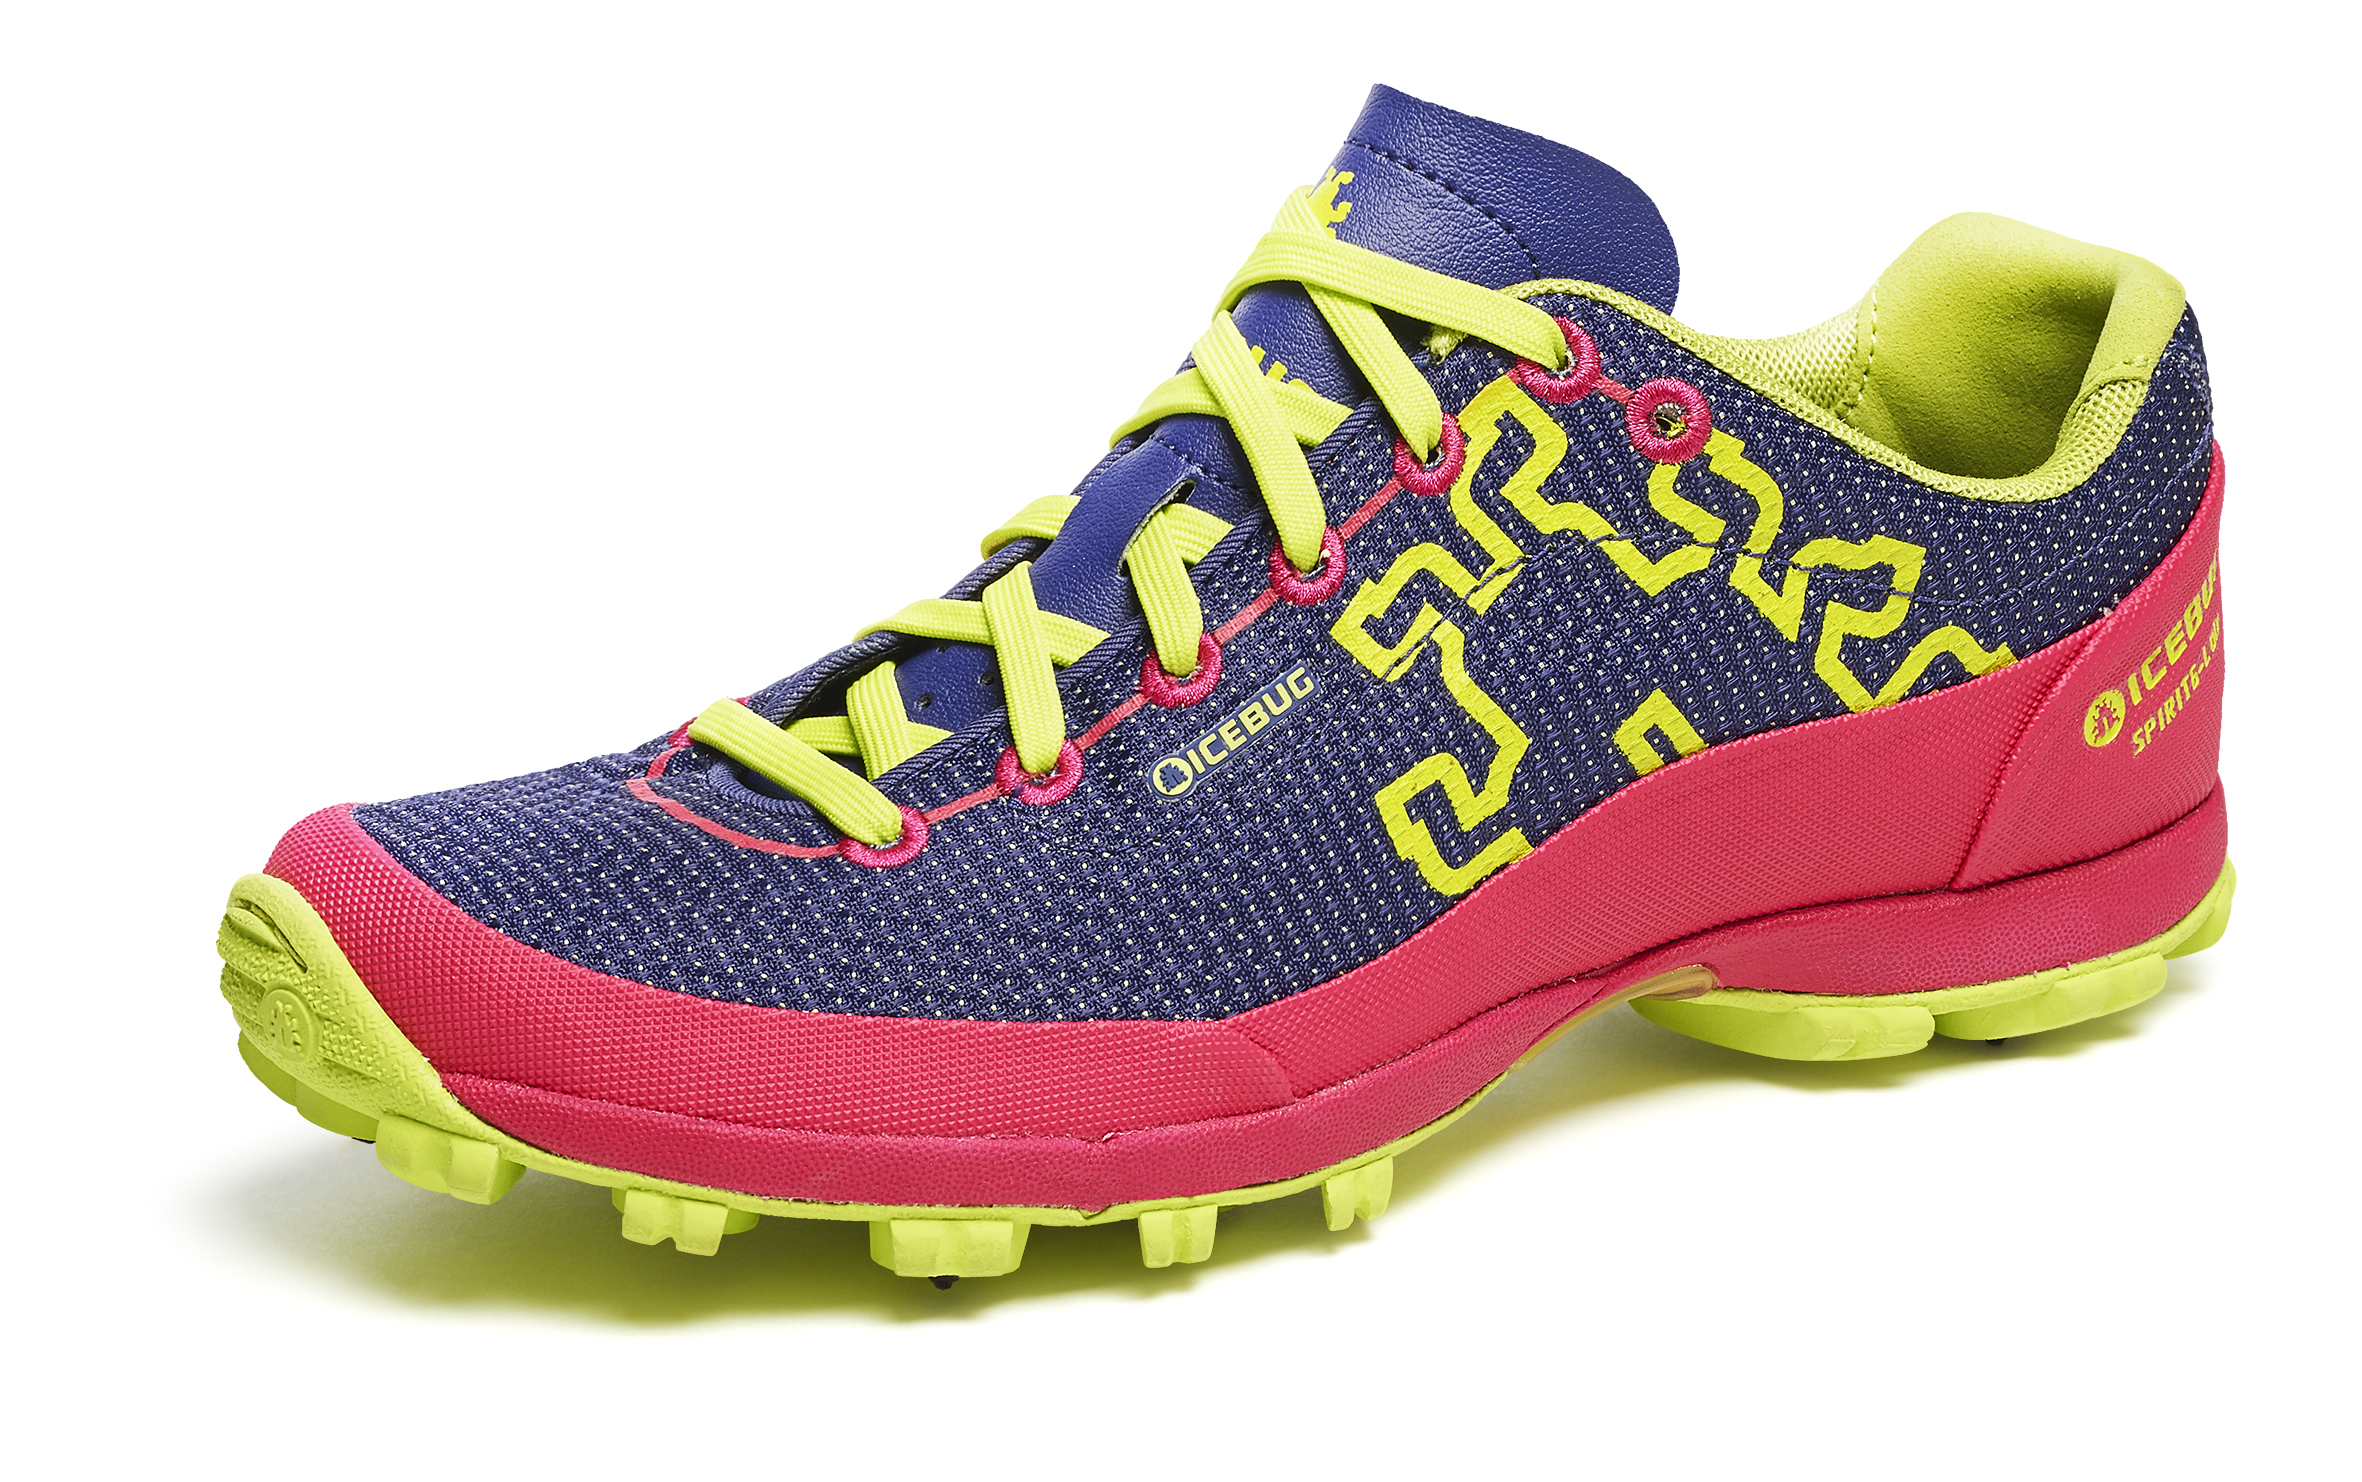 Icebug Trail Running Shoes